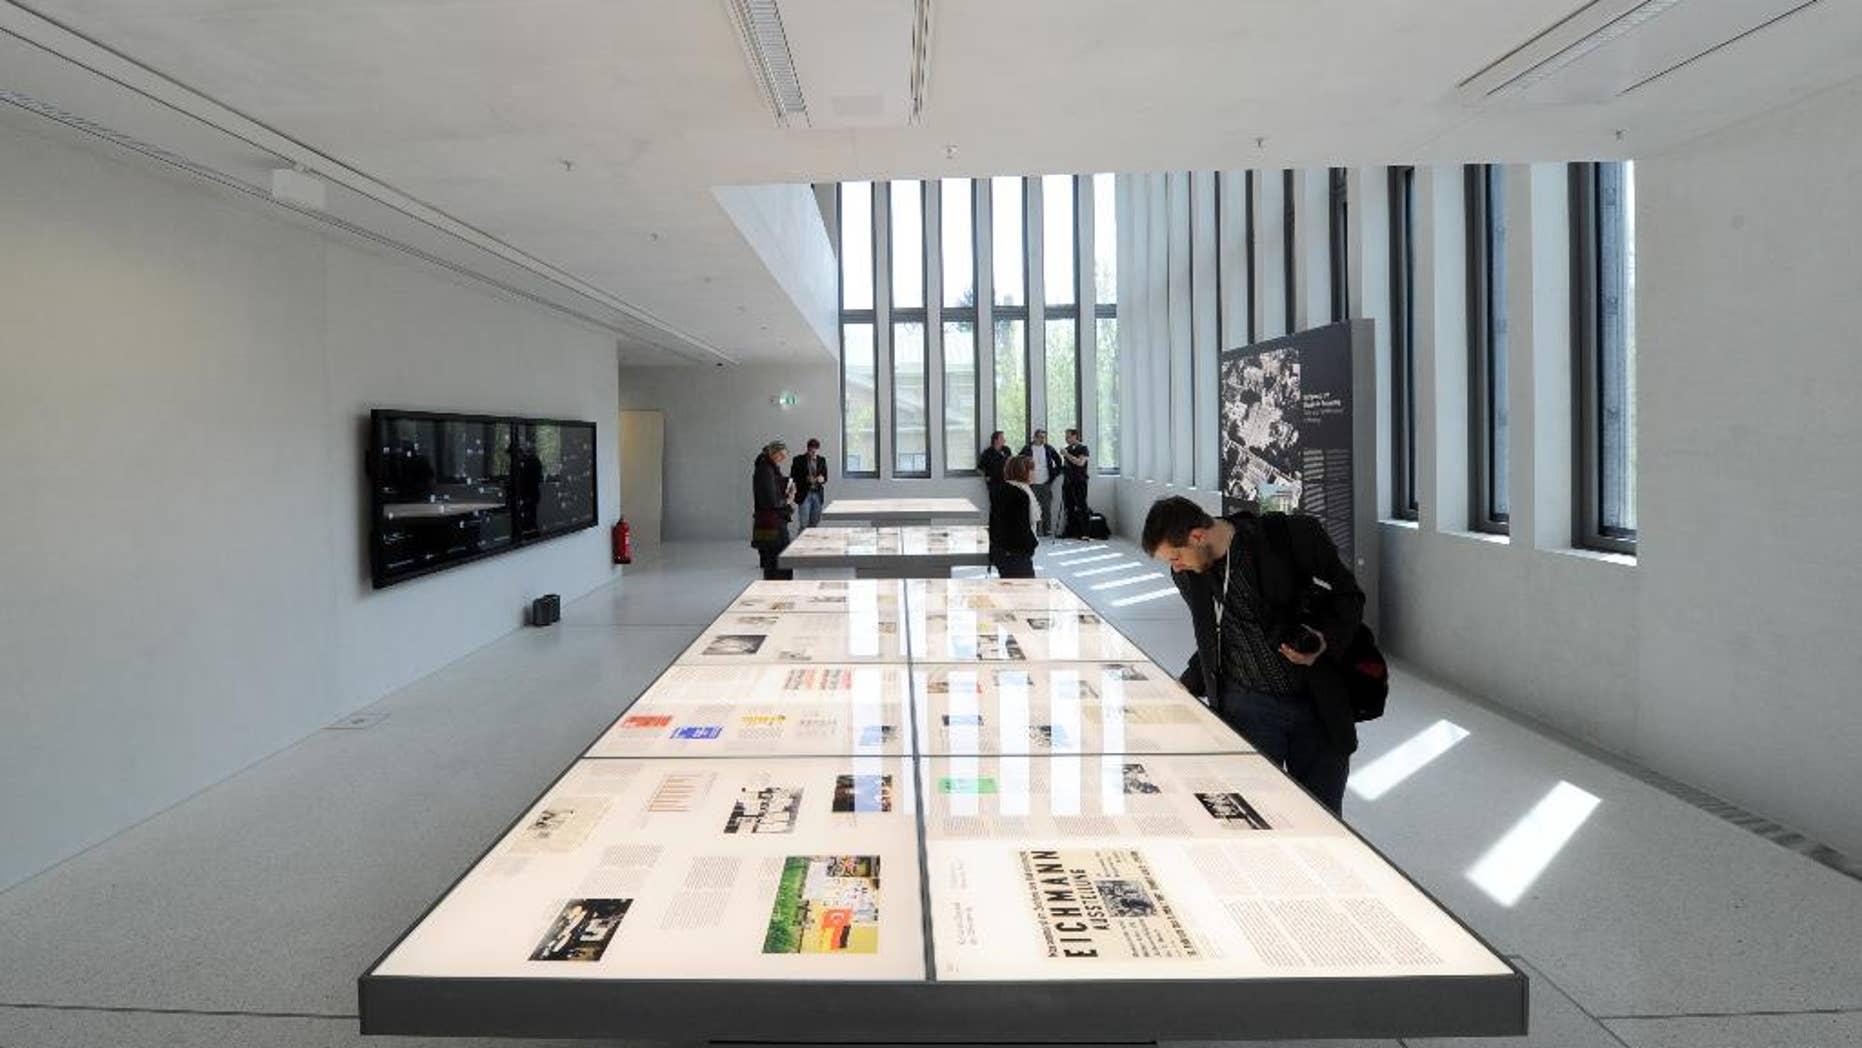 Visitors stand in an exhibition room where exhibits are shown on wall charts and light tables during a press preview of the Documentation Center for the History of National Socialism in Munich, Germany, Wednesday, April 29, 2015. new museum dedicated to exploring its past as the birthplace of the Nazi movement. (Tobias Hase/dpa via AP)